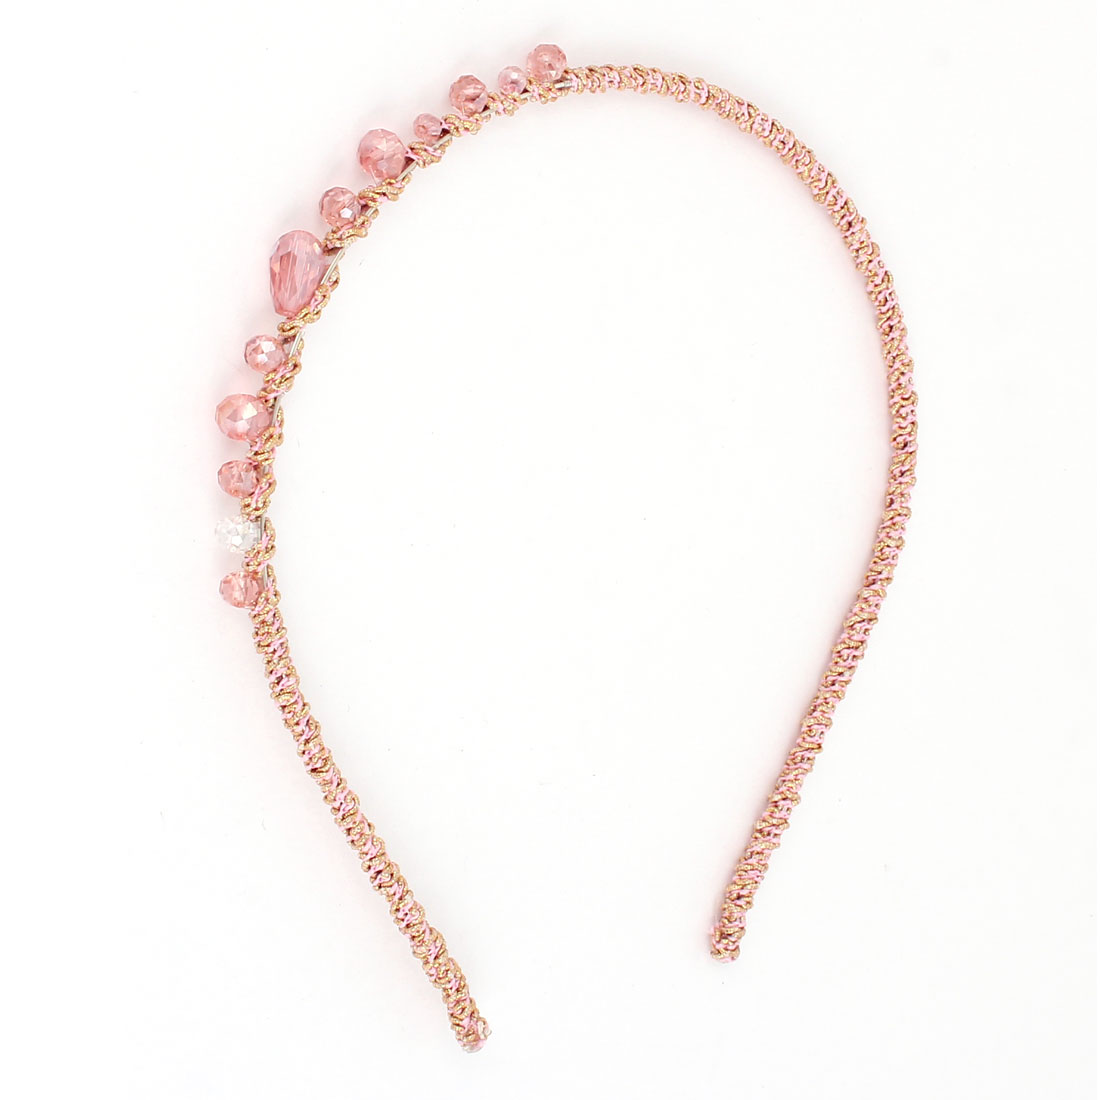 Plastic Mini Crystal Braid Slim Metal Hair Hoop Headband Pink for Ladies